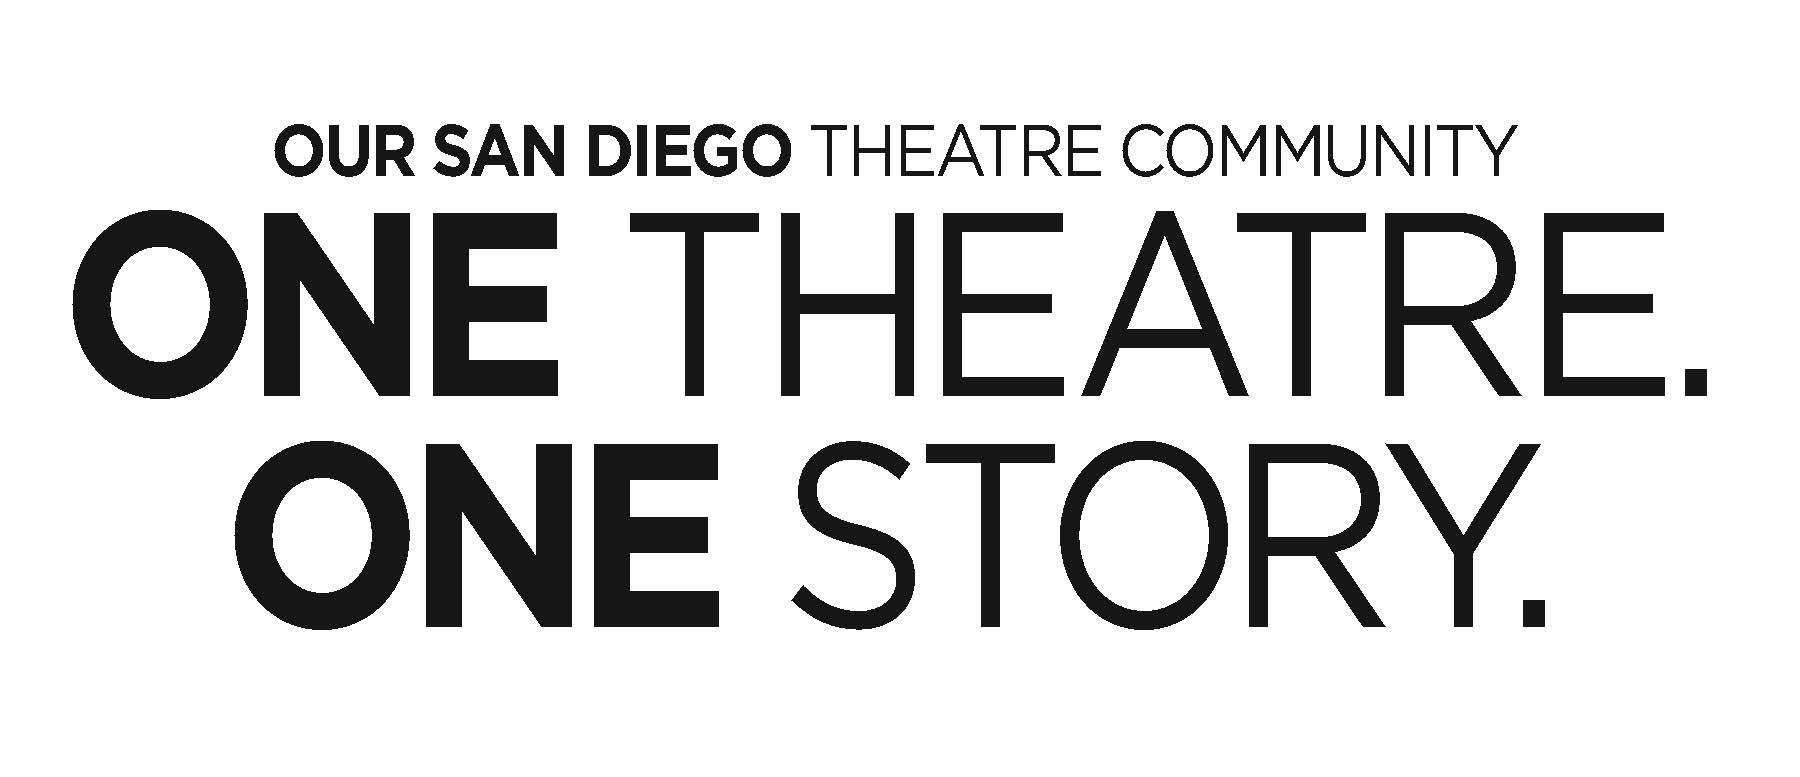 One Theatre. One Story.